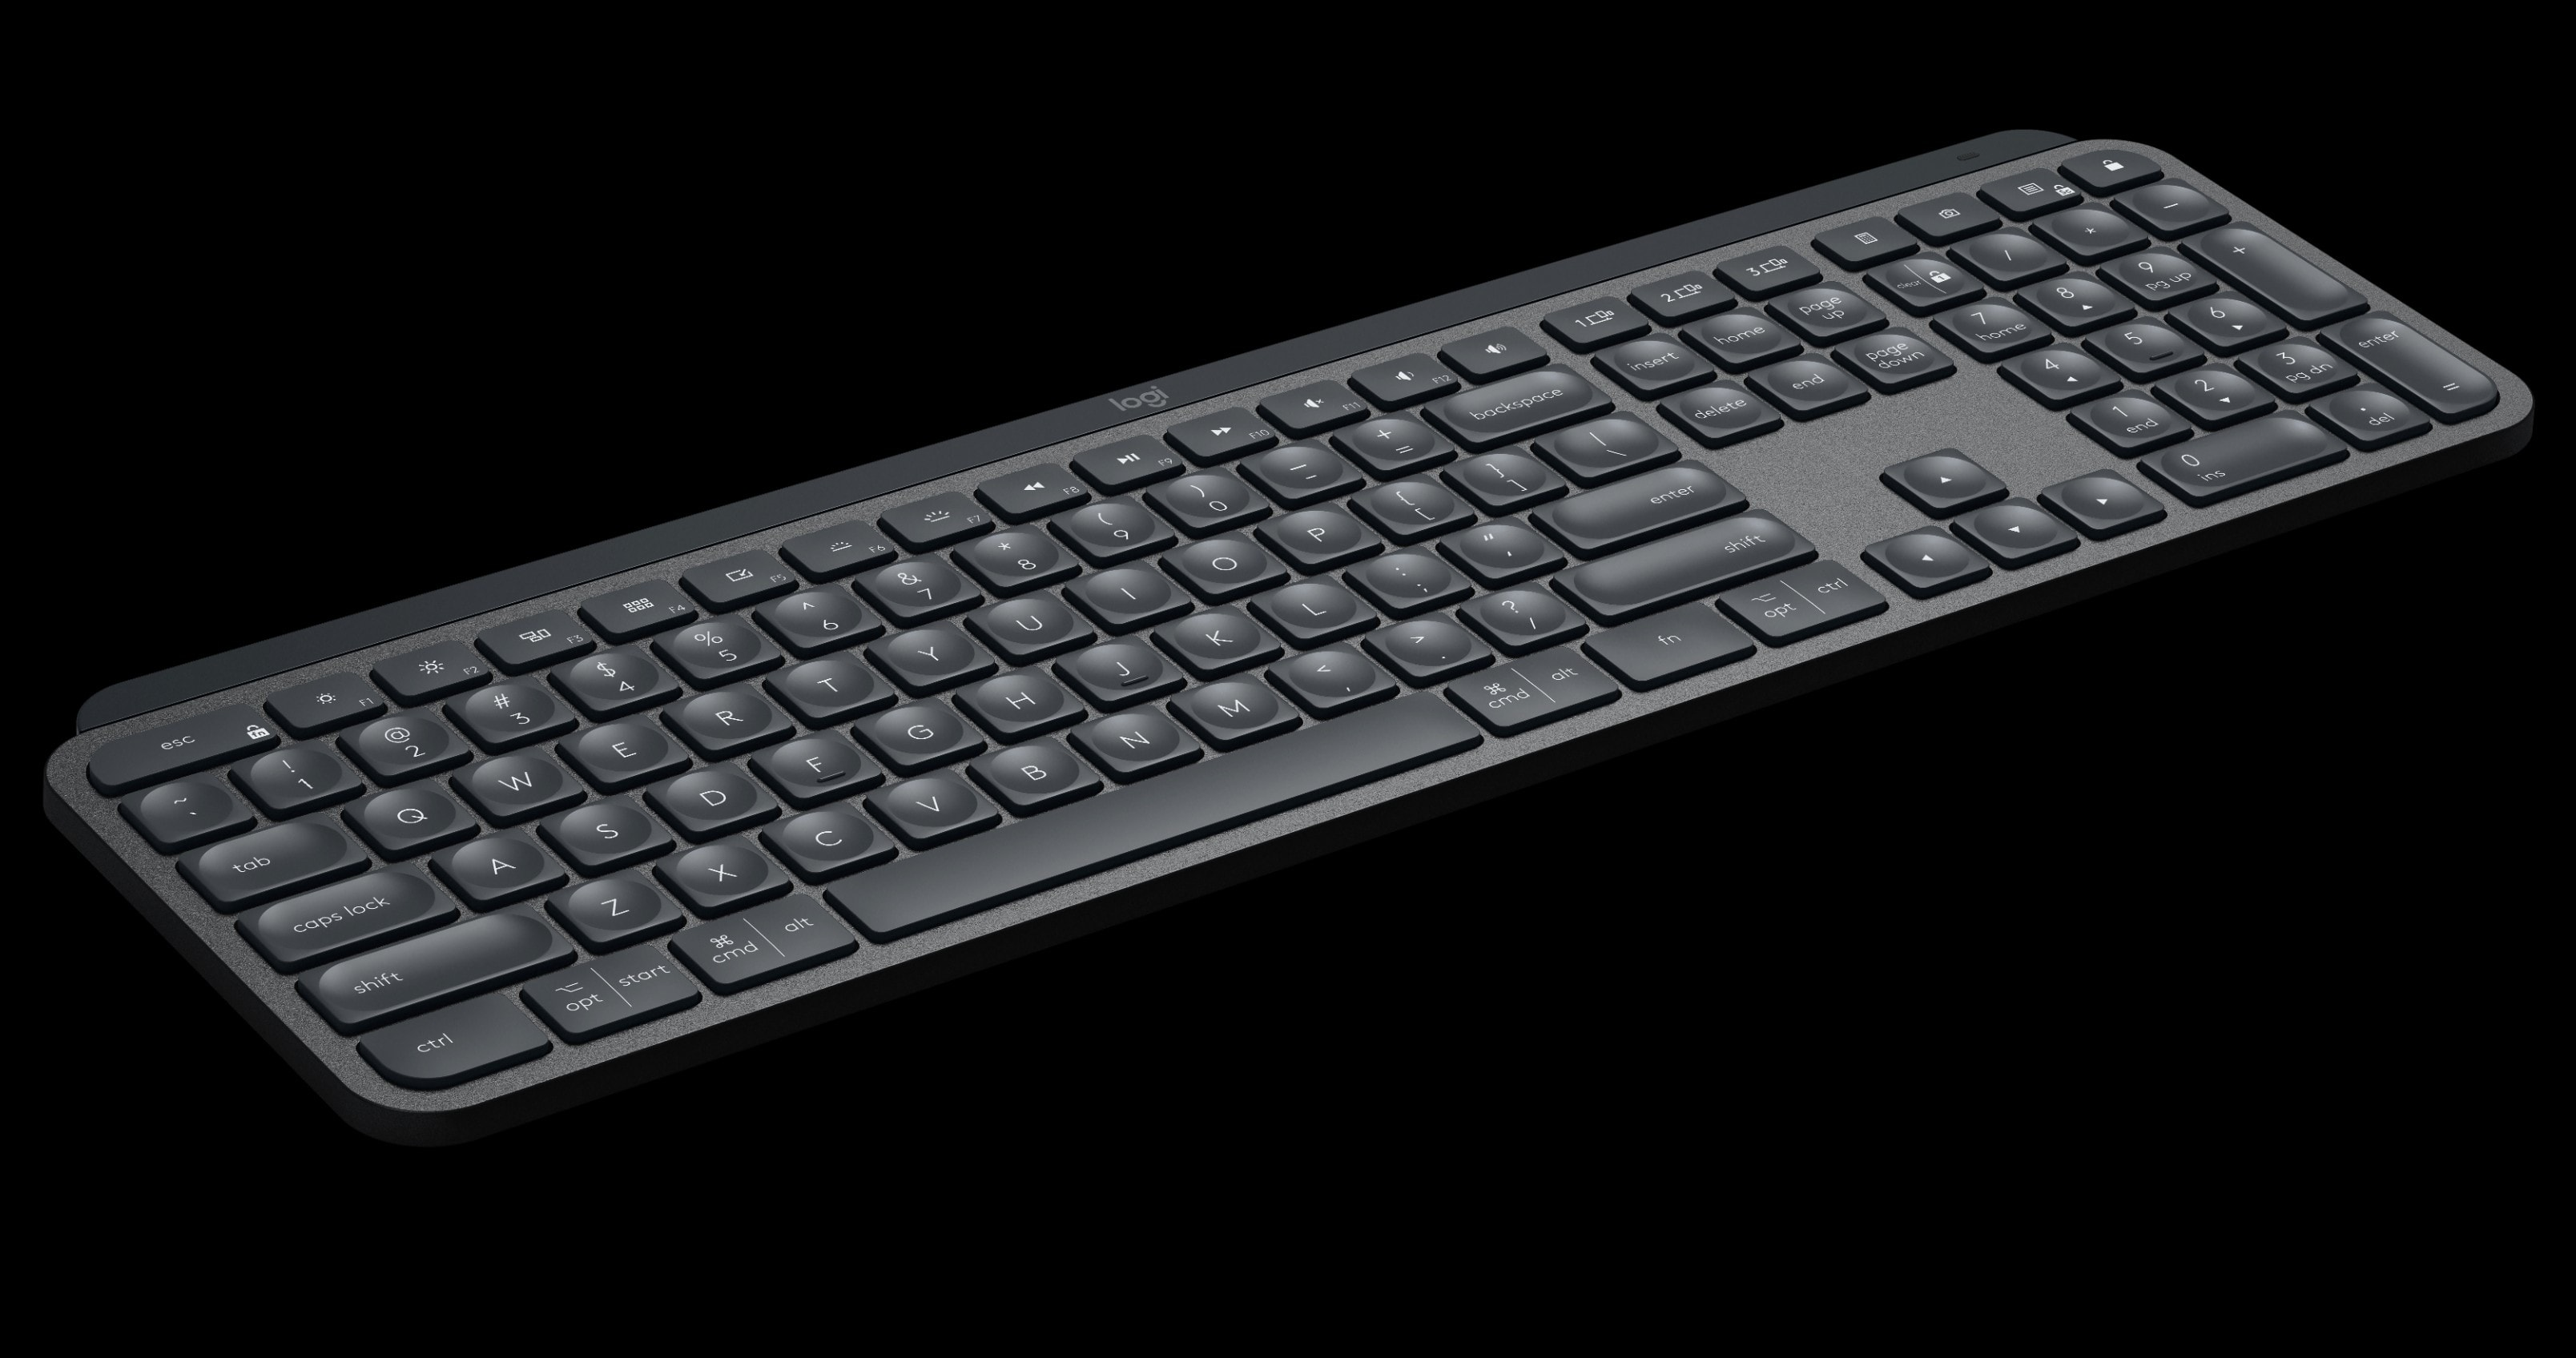 With new MX Master 3 and MX Keys, Logitech doubles down on